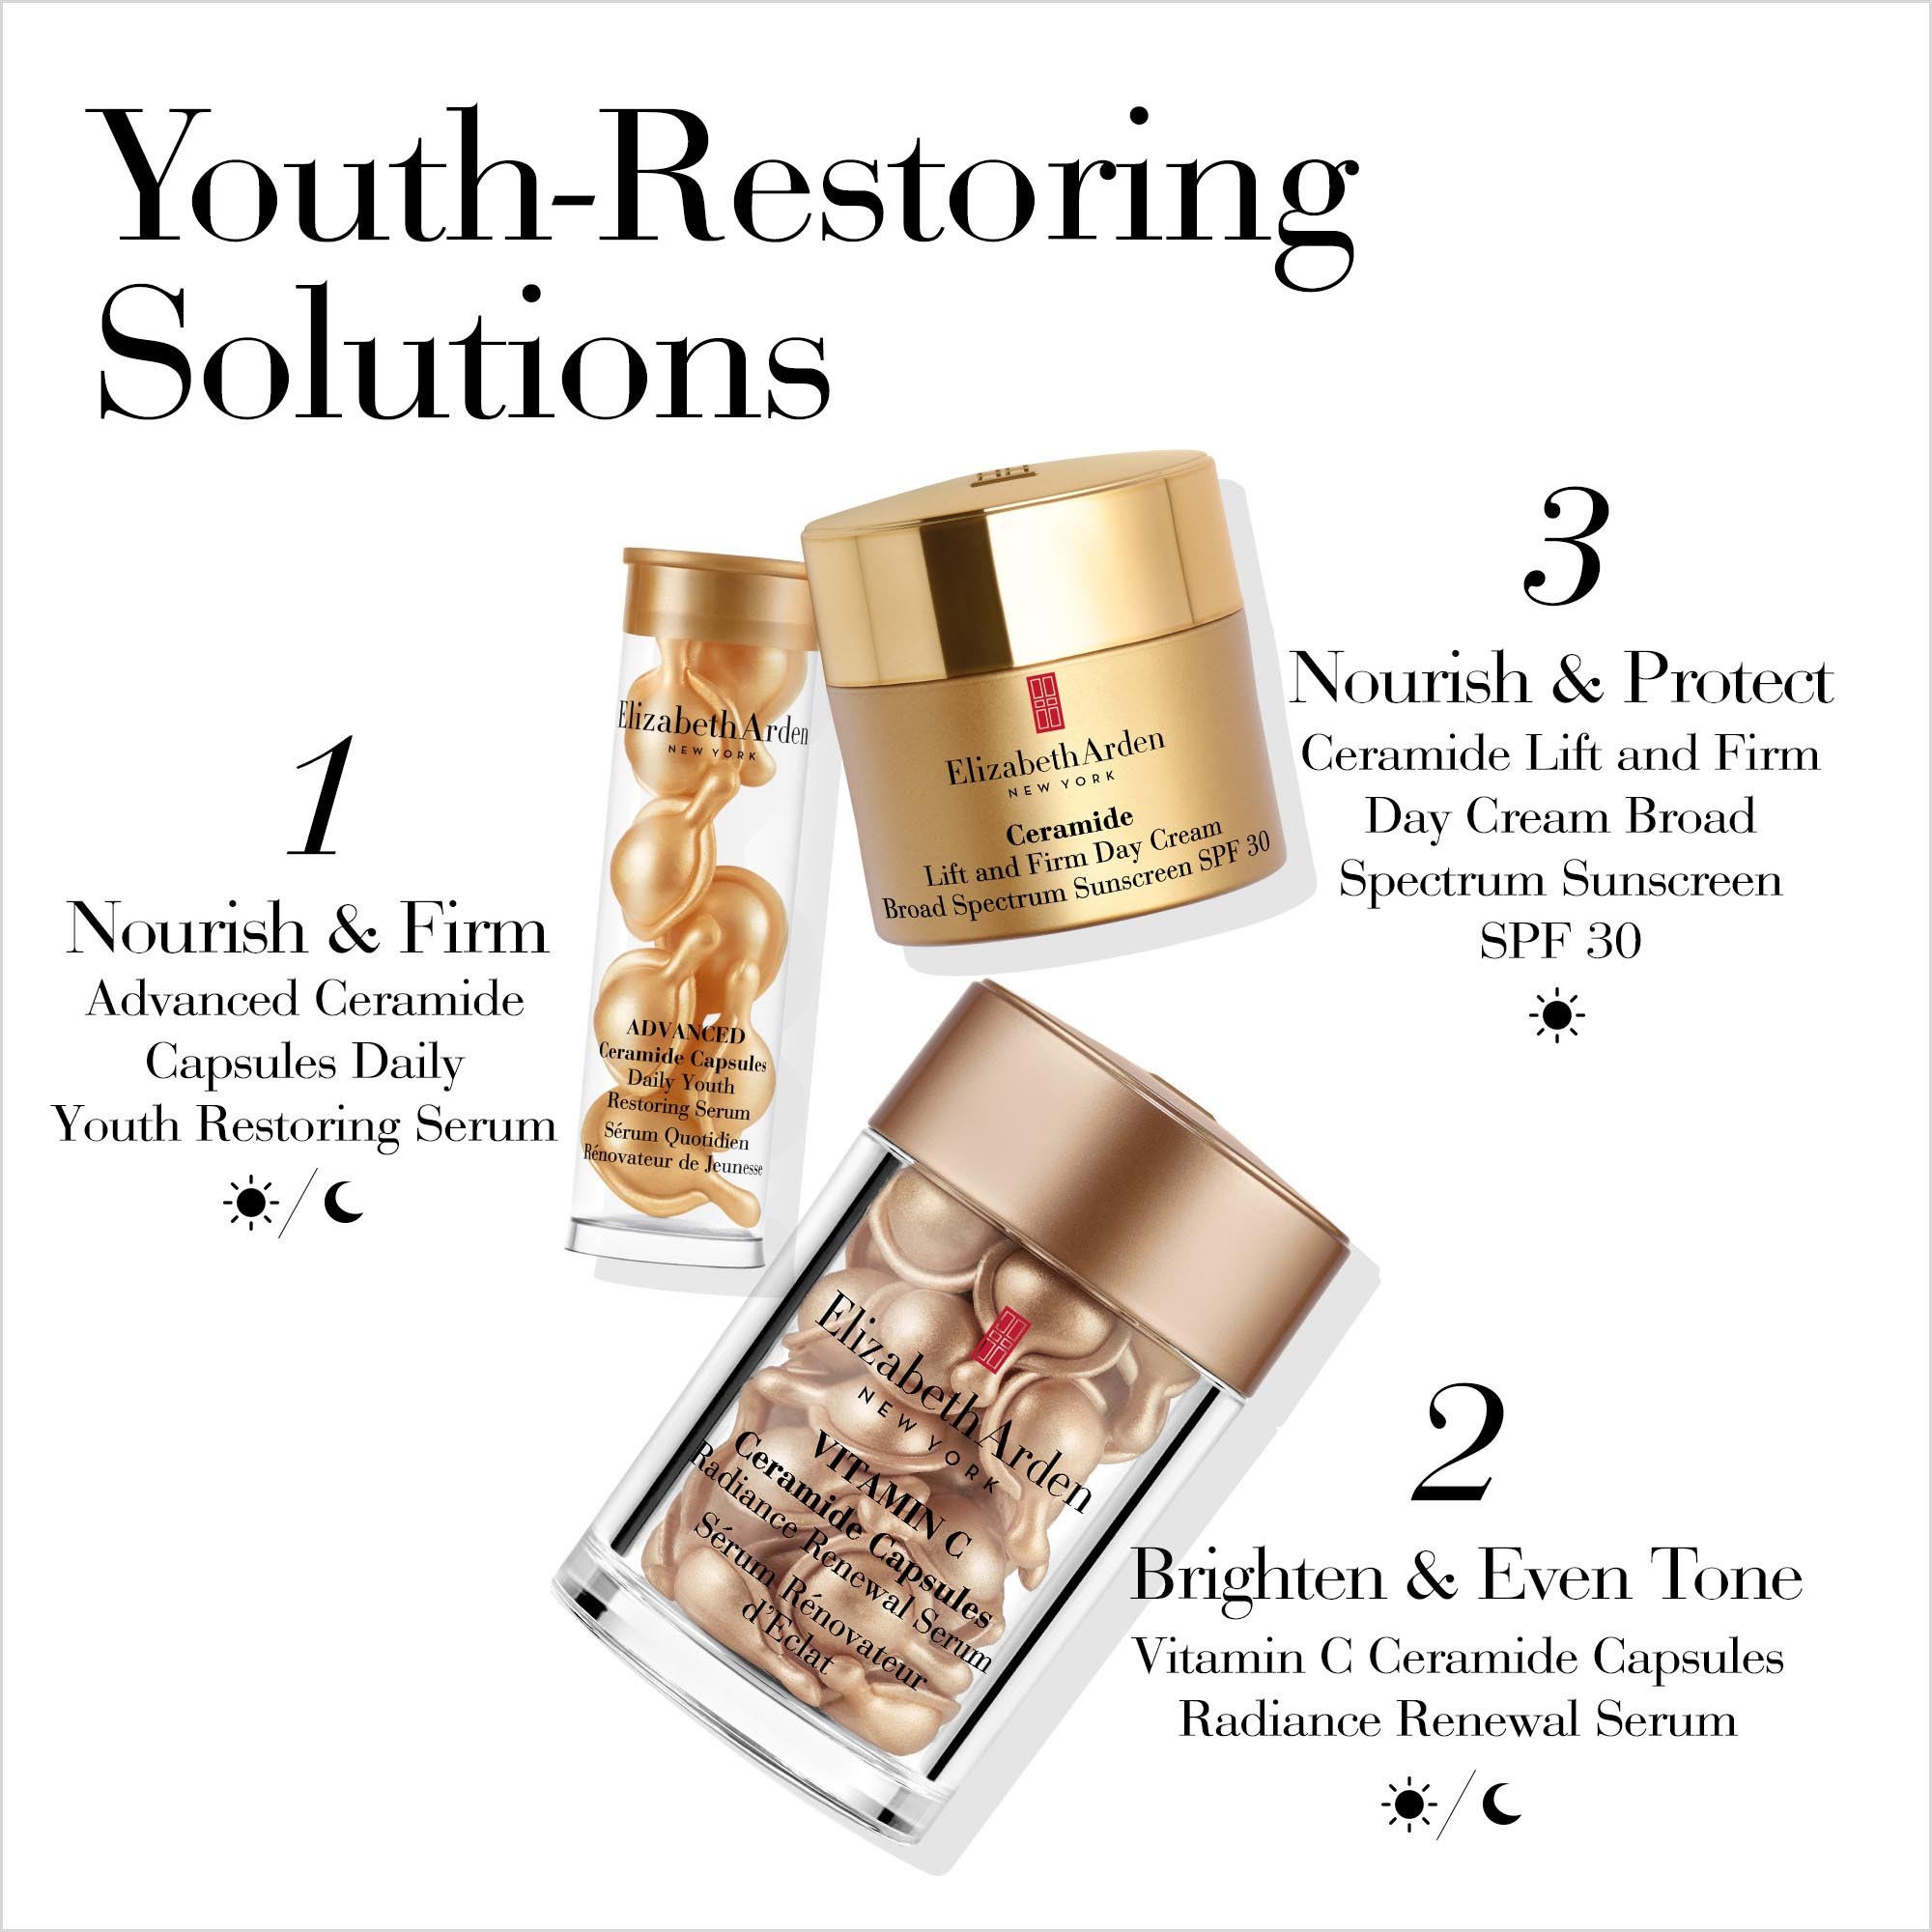 1-Nourish and Firm with Advanced Ceramide Capsules for Day or Night, 2-Nourish and Protect Ceramide Lift and Firm Day Cream for Day, 3- Brighten and Even Tone with Vitamin C Ceramide Capsules for Day or Night